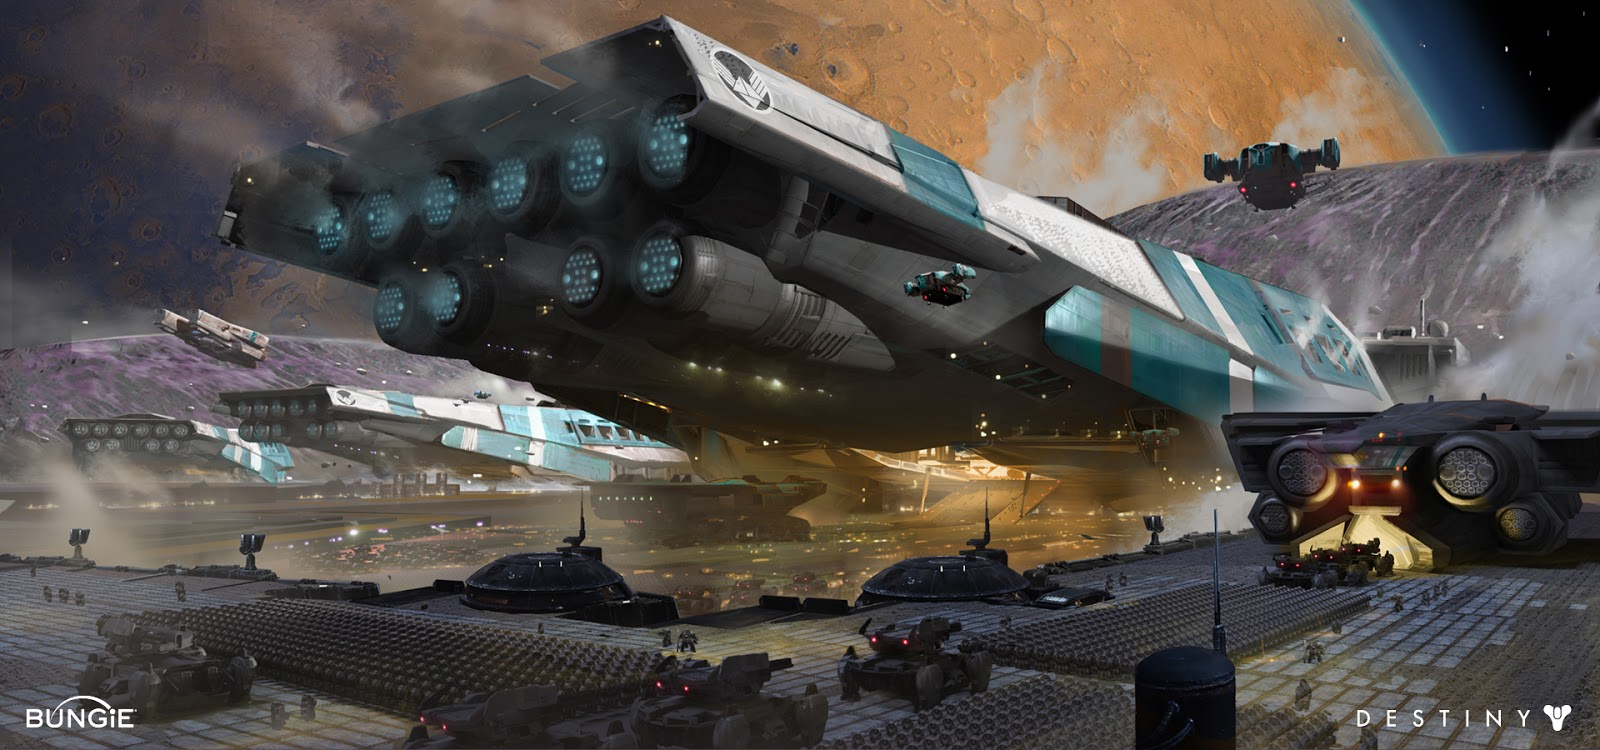 These are early concepts for the cabal staging area and large